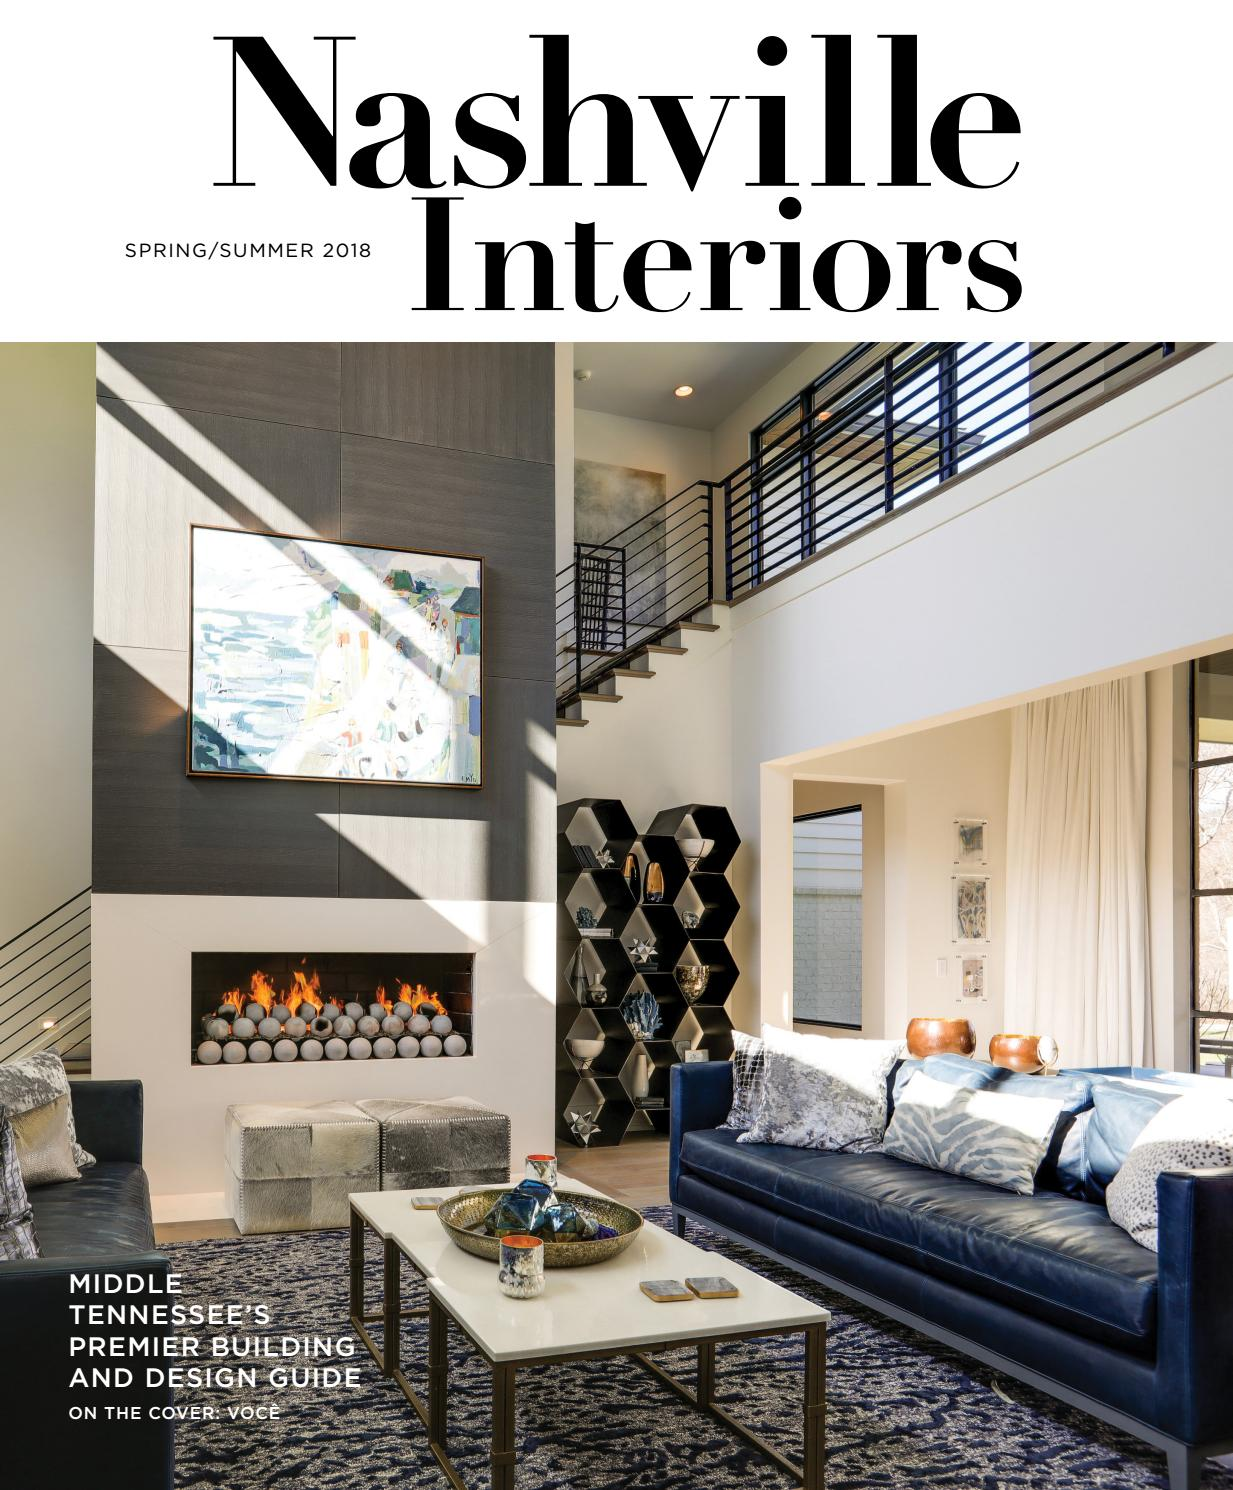 Nashville interiors spring summer 2018 by nashville interiors issuu